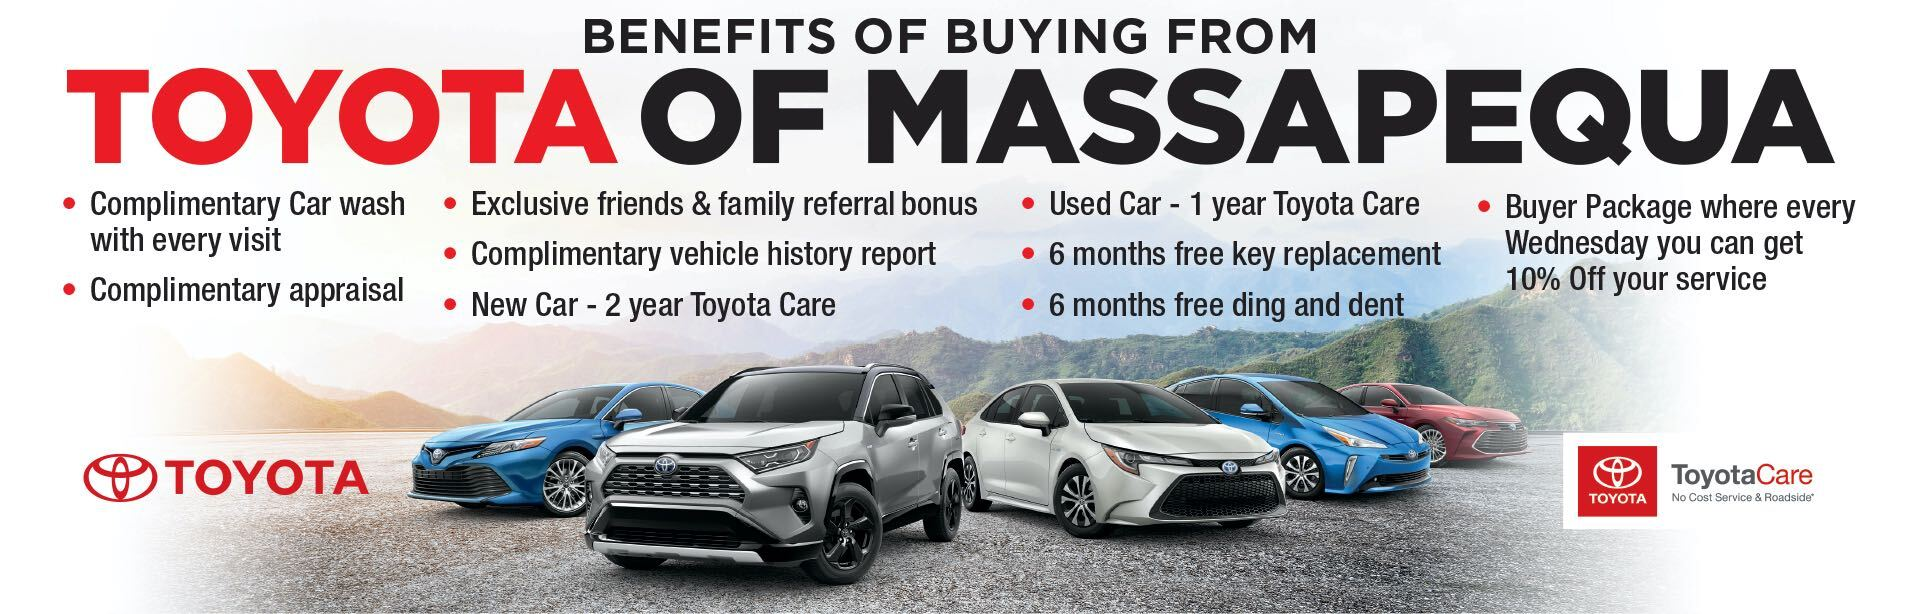 Why Buy from Toyota of Massapequa